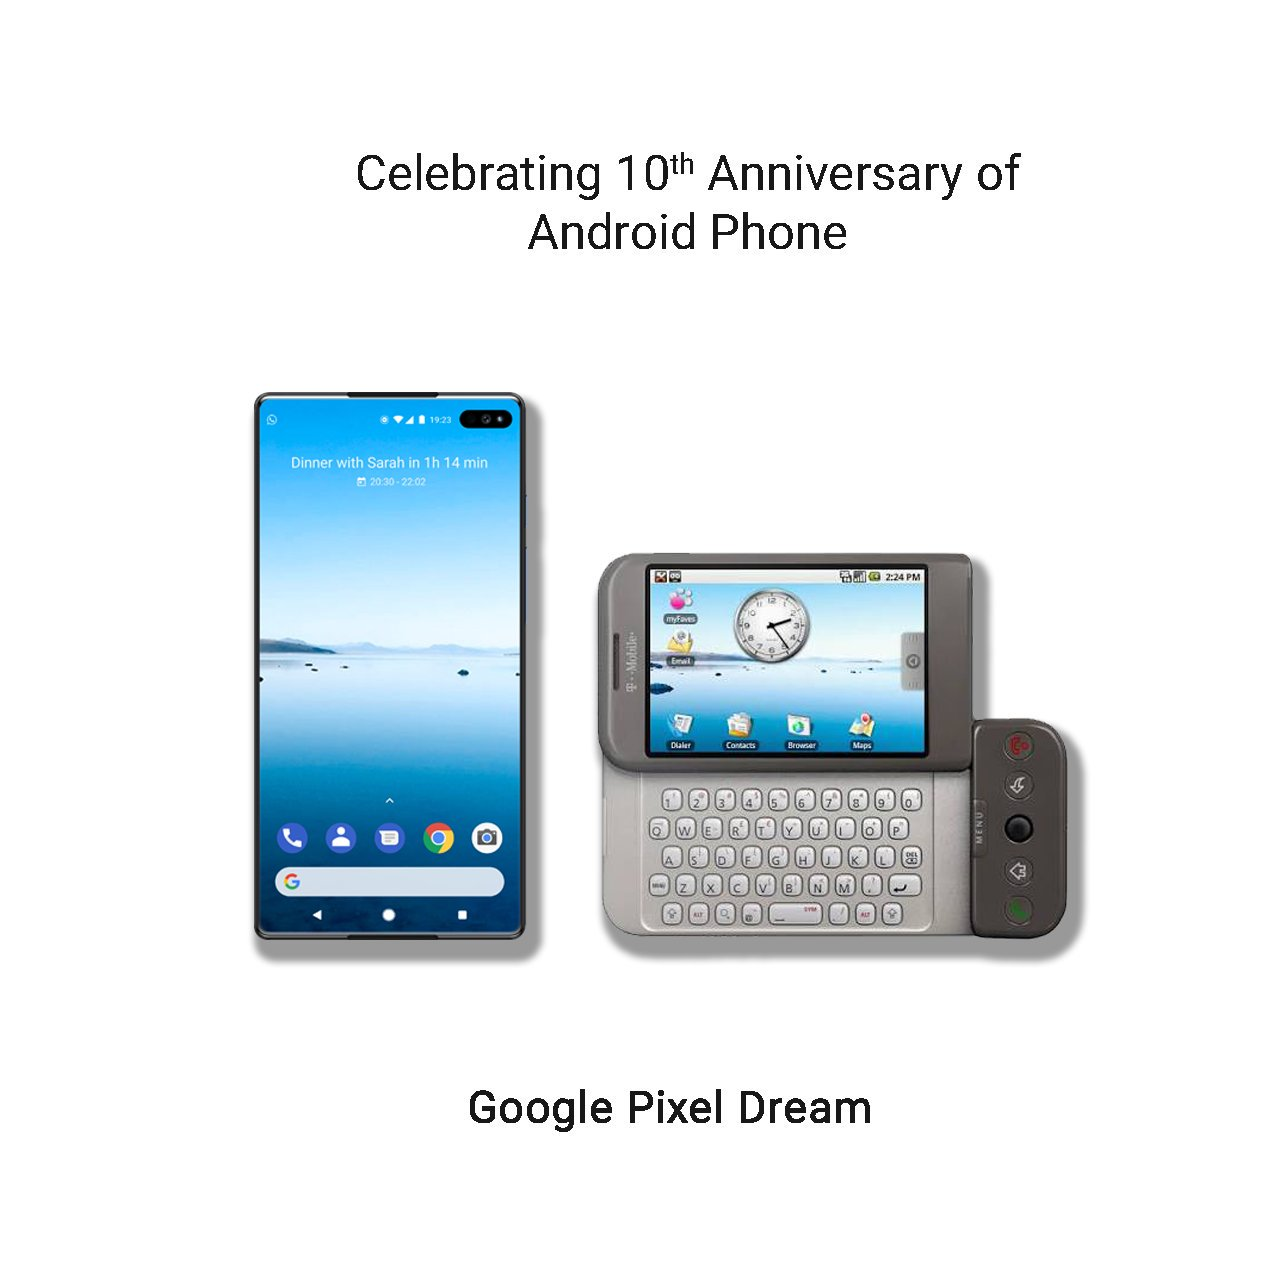 What does the phone dream about